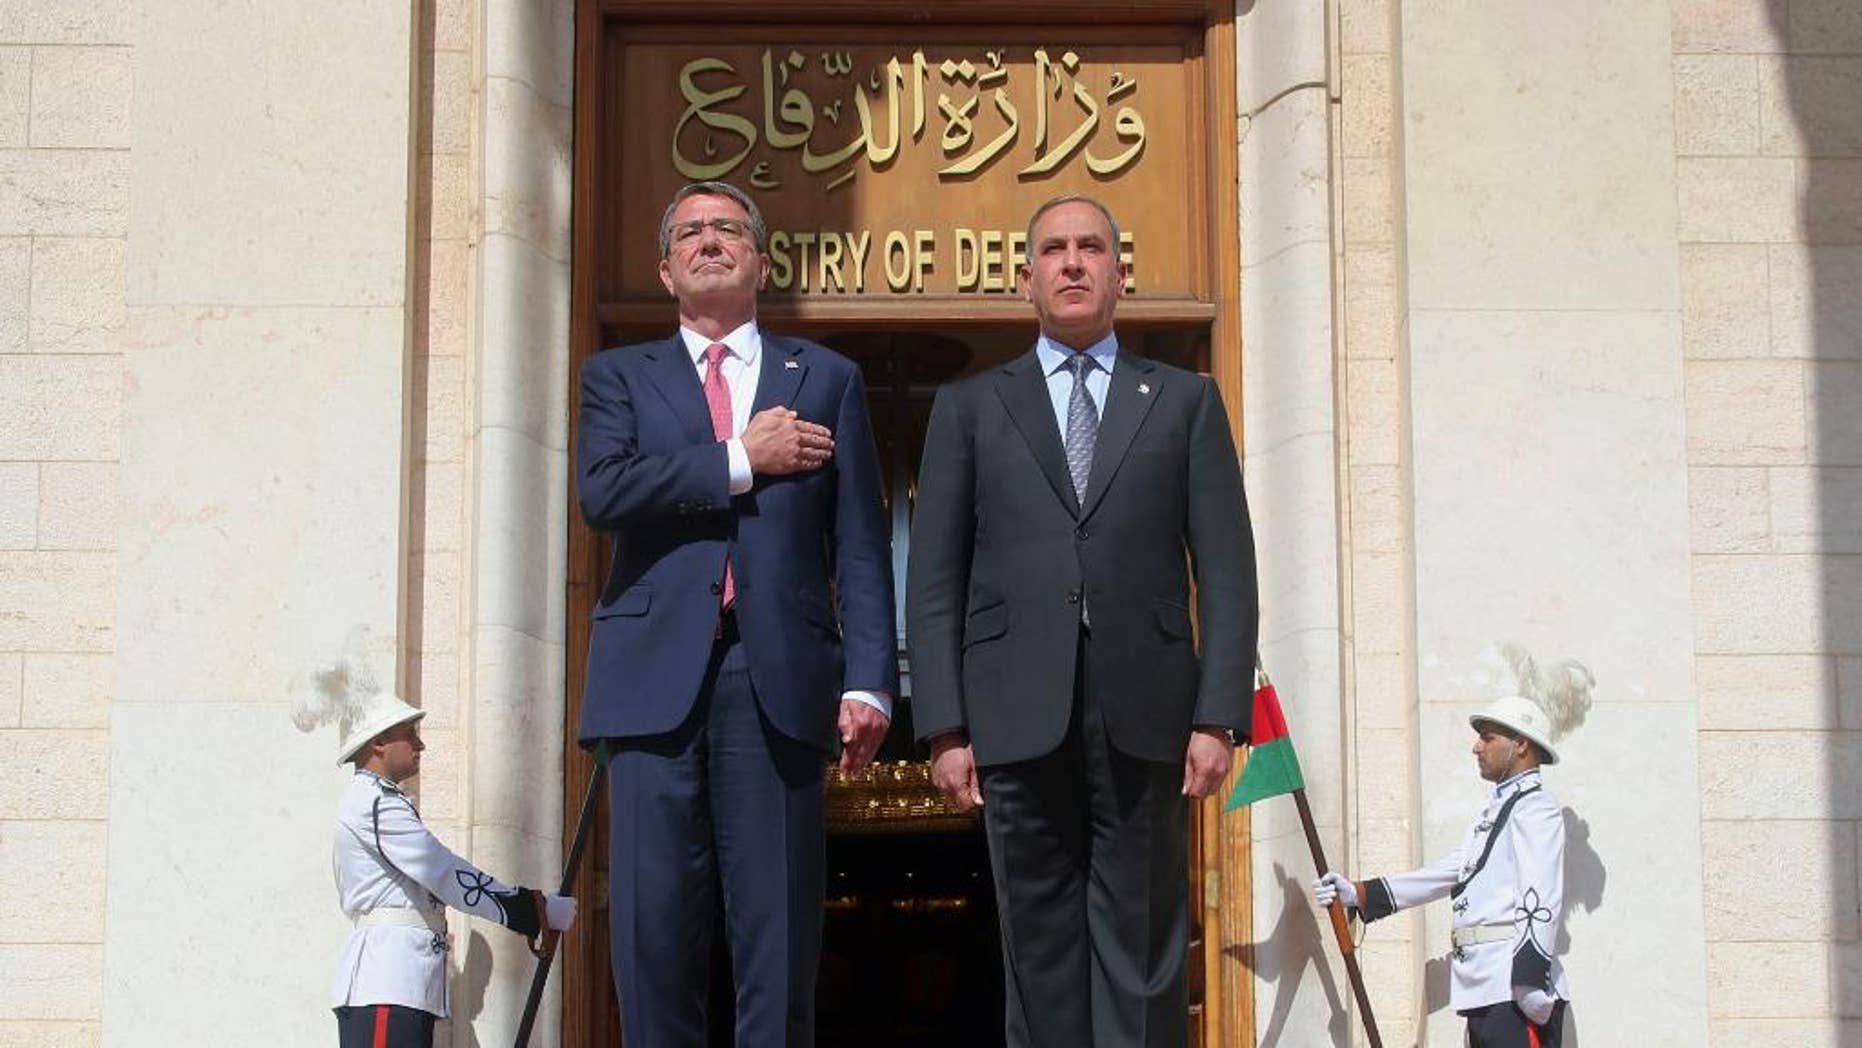 FILE - In this Monday, April 18, 2016 file photo, visiting U.S. Defense Secretary Ash Carter, left, and his Iraqi counterpart, Khaled al-Obeidi, stand for their country's national anthems during a welcome ceremony at the Ministry of Defense in Baghdad, Iraq. On Saturday, Dec. 3, 2016, Carter said the American military, along with its international partners, will need to remain in Iraq even after the expected defeat of the Islamic State group. (AP Photo)